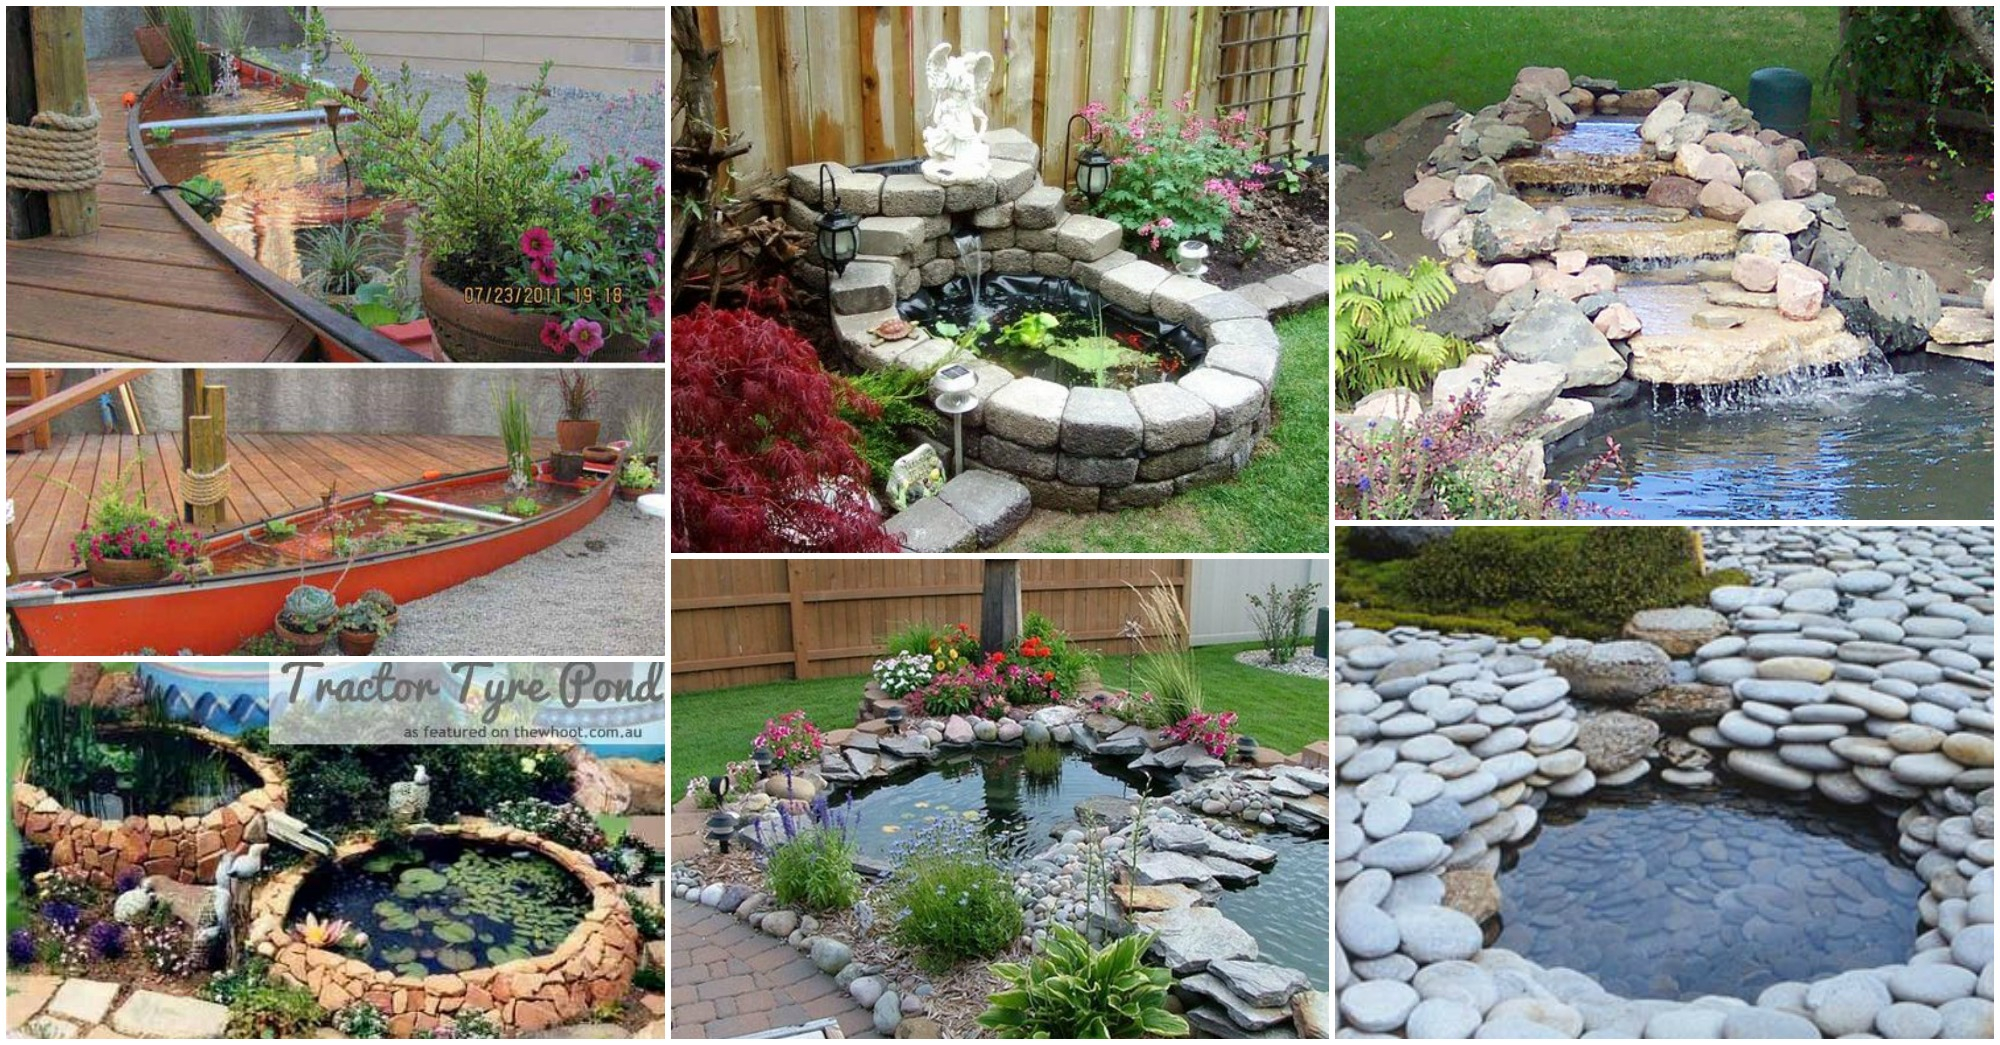 20 Diy Backyard Pond Ideas On A Budget That You Will Love inside Small Backyard Pond Ideas